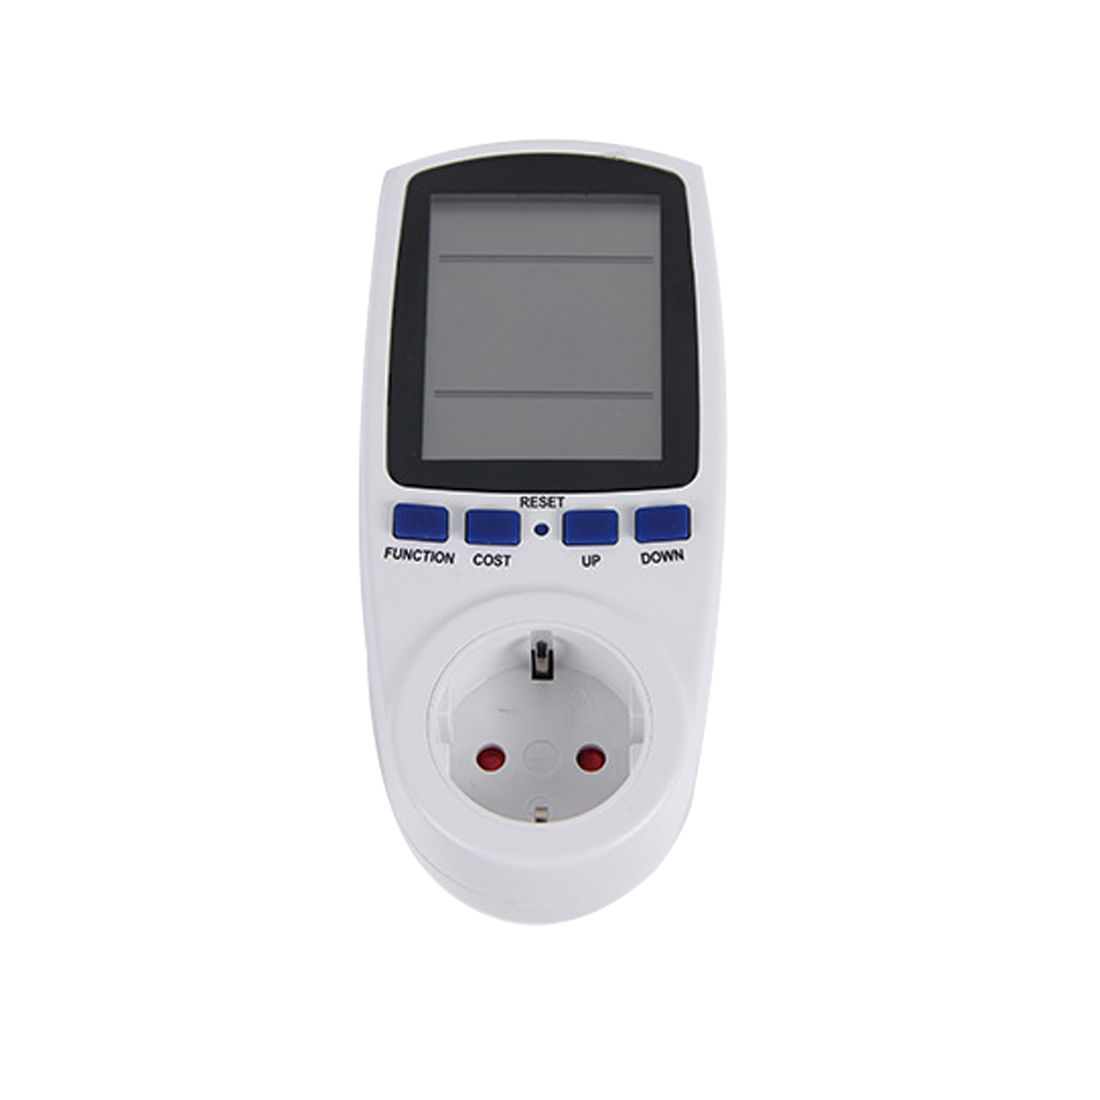 AC Power Meter 220V Digital Wattmeter EU Energy Meter Watt Monitor Electricity Consumption Measuring Socket Analyzer